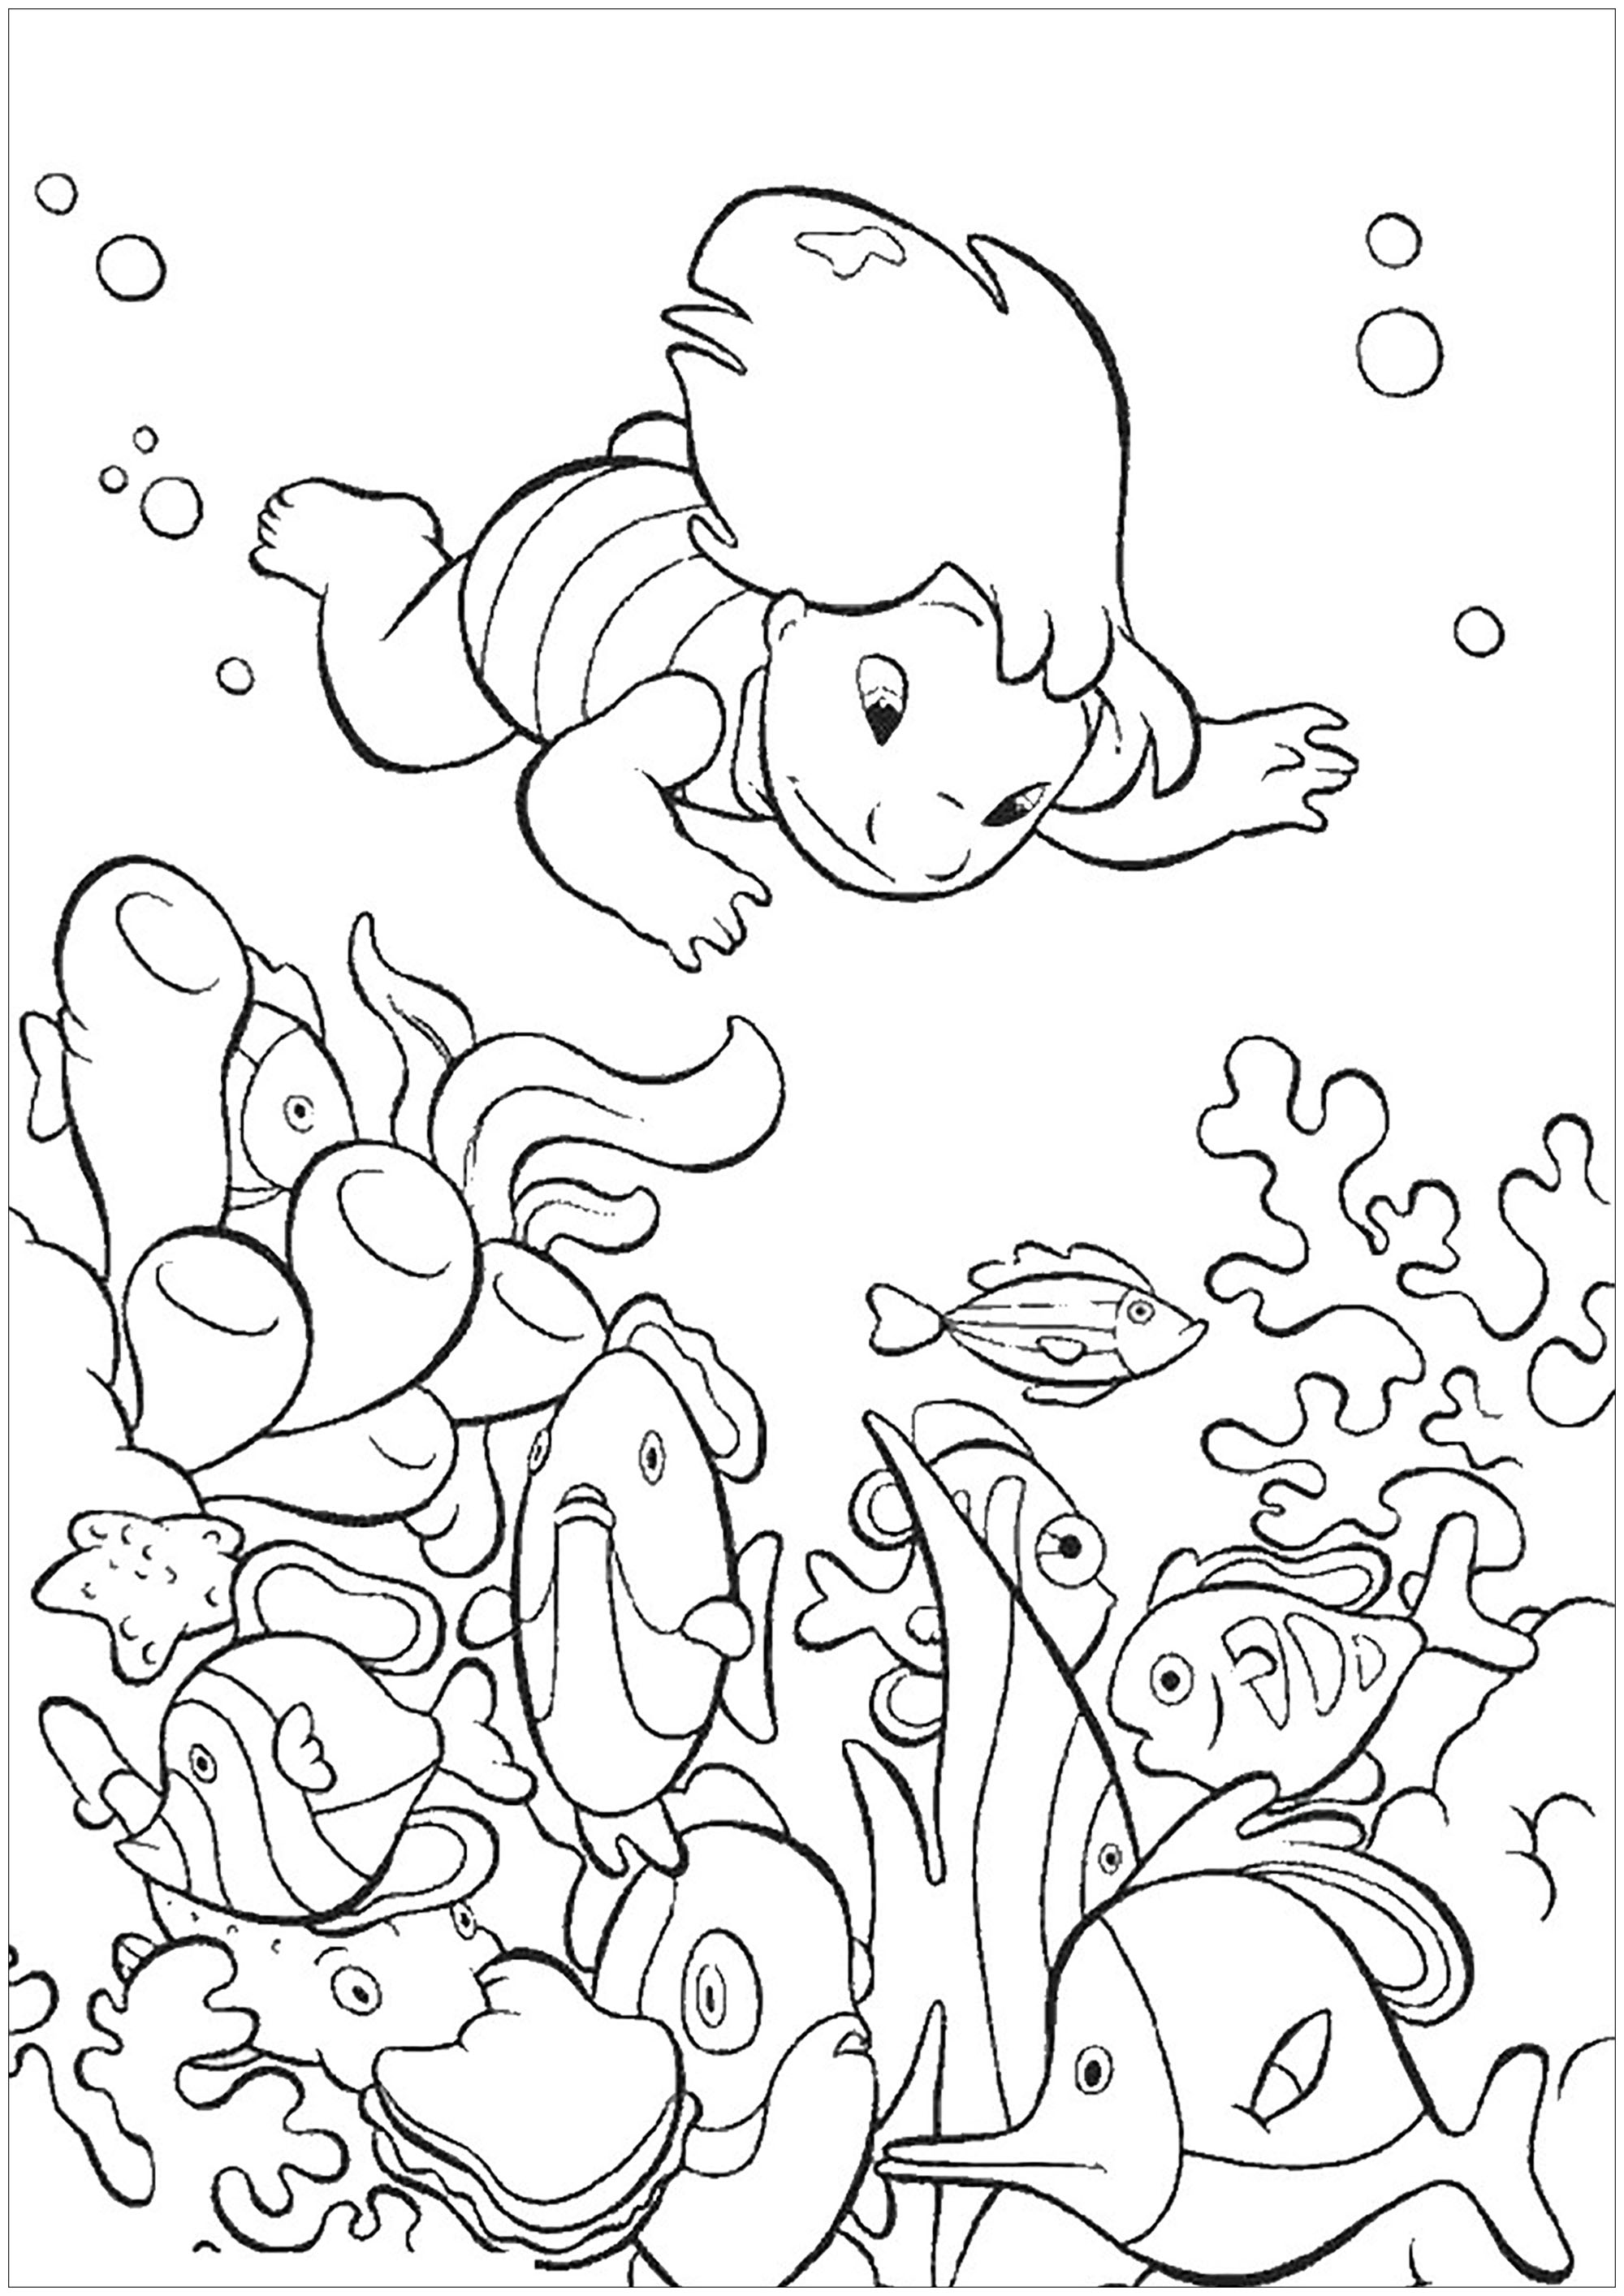 Lilo And Stich coloring page to download for free